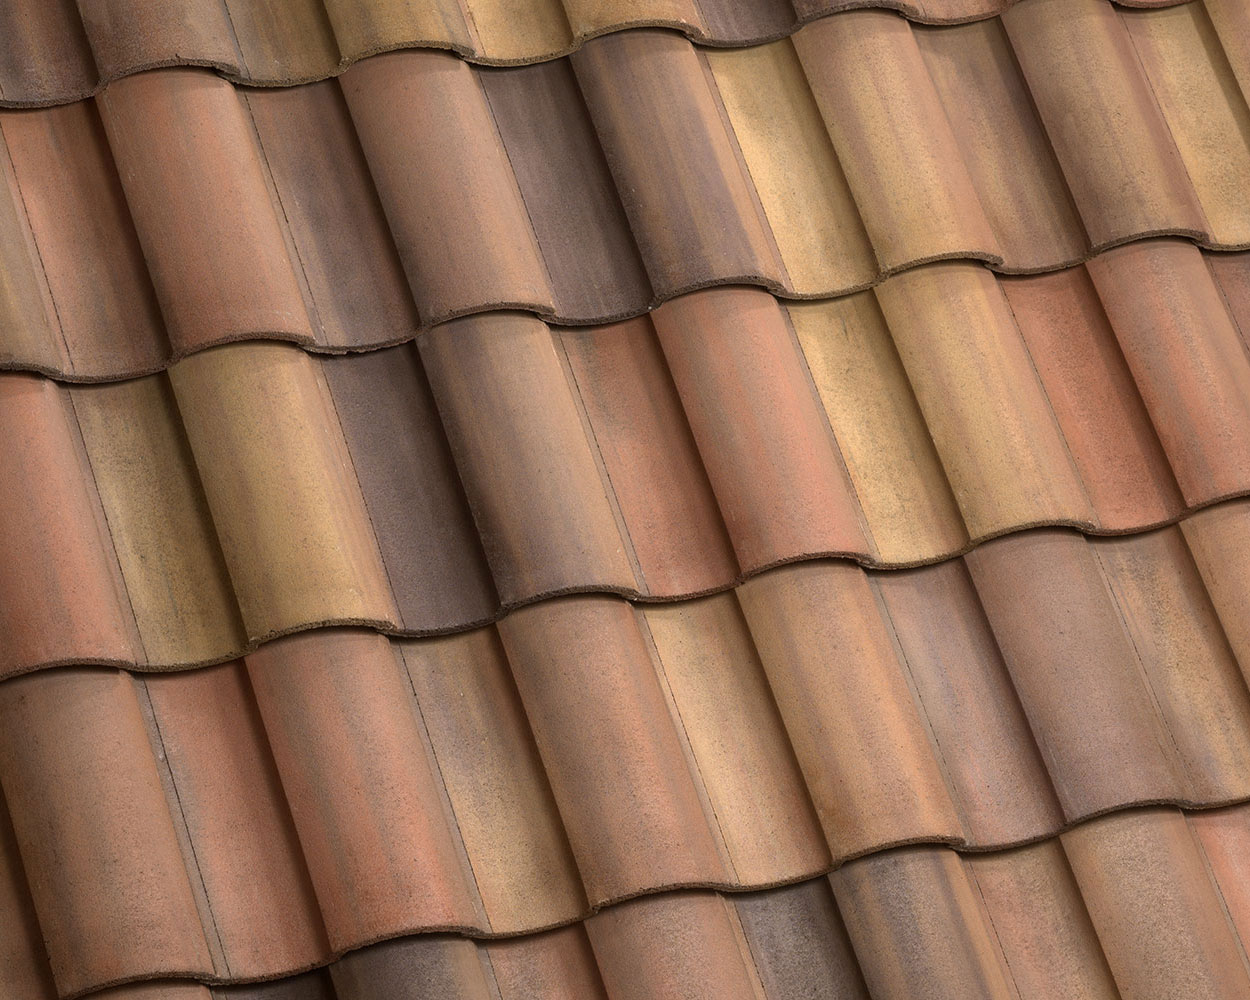 Palm beach blend tile roof color swatch